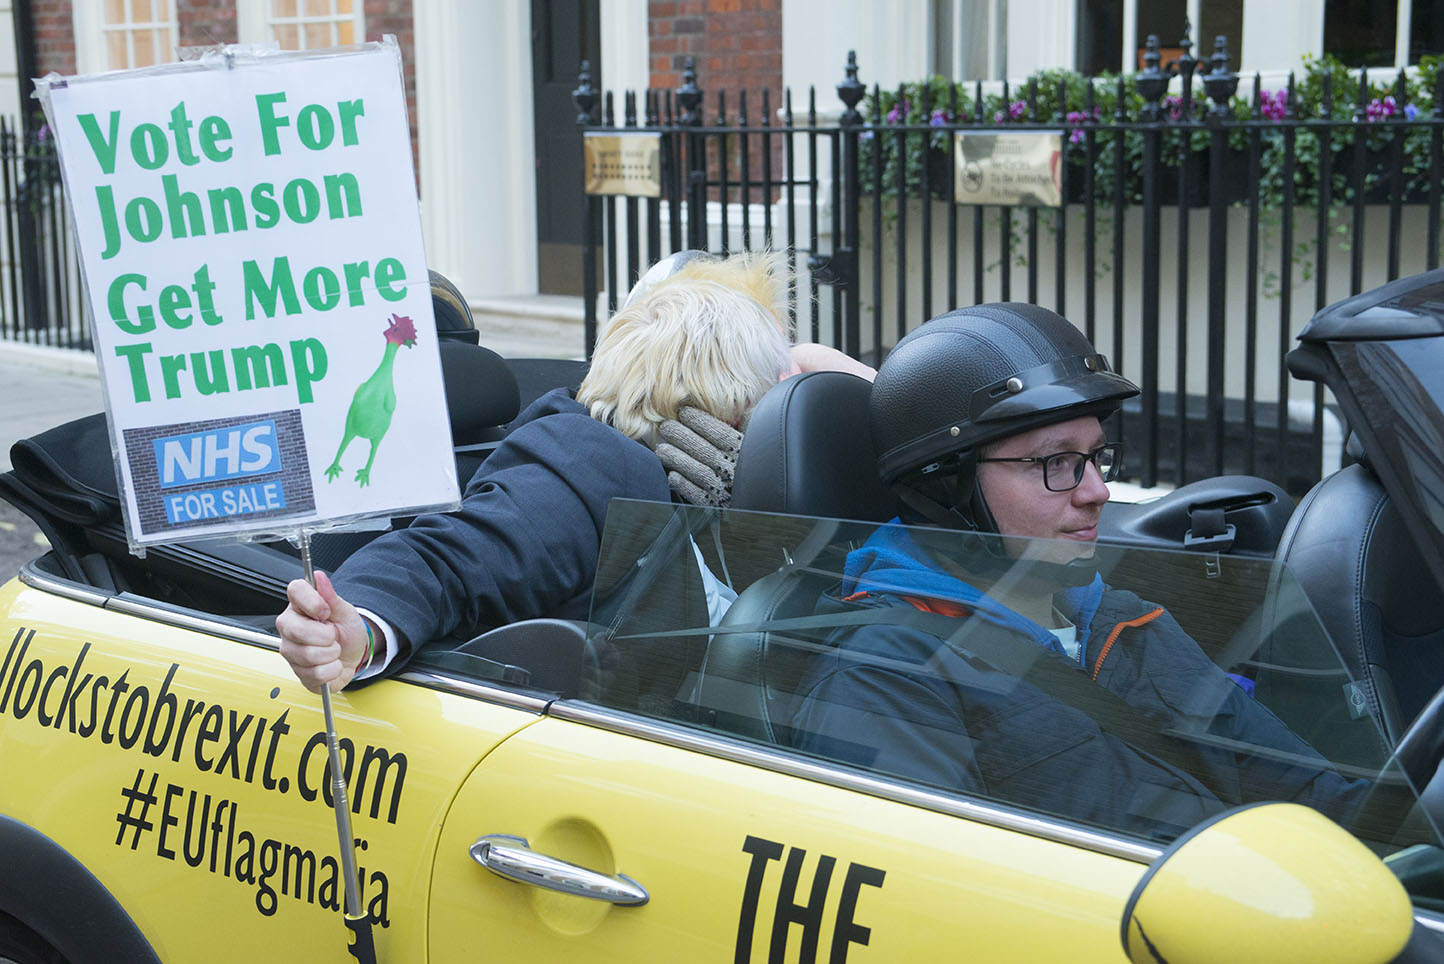 """3 Dec 2019 - London, UK - Faux Bojo (Drew Galdron) and """"Donald Trump"""" getting to know each other in a stunt organised and crowdfunded by anti-brexit campaigning group EU Flag Mafia."""